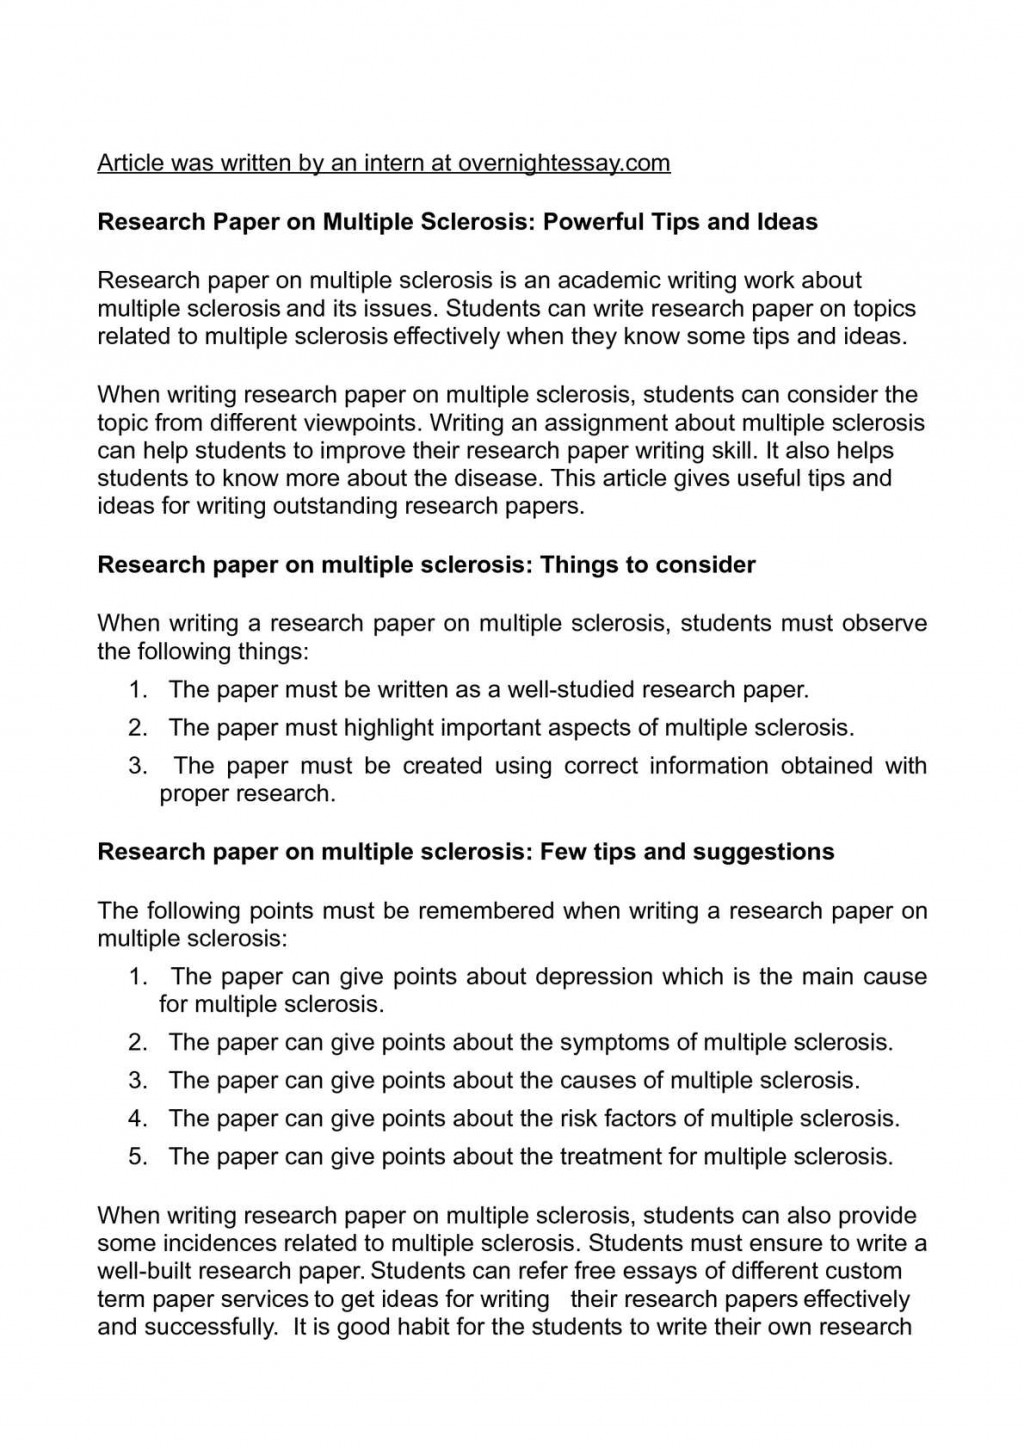 015 Research Paper How To Write Breathtaking A Conclusion For Mla An Abstract Examples Introduction Large